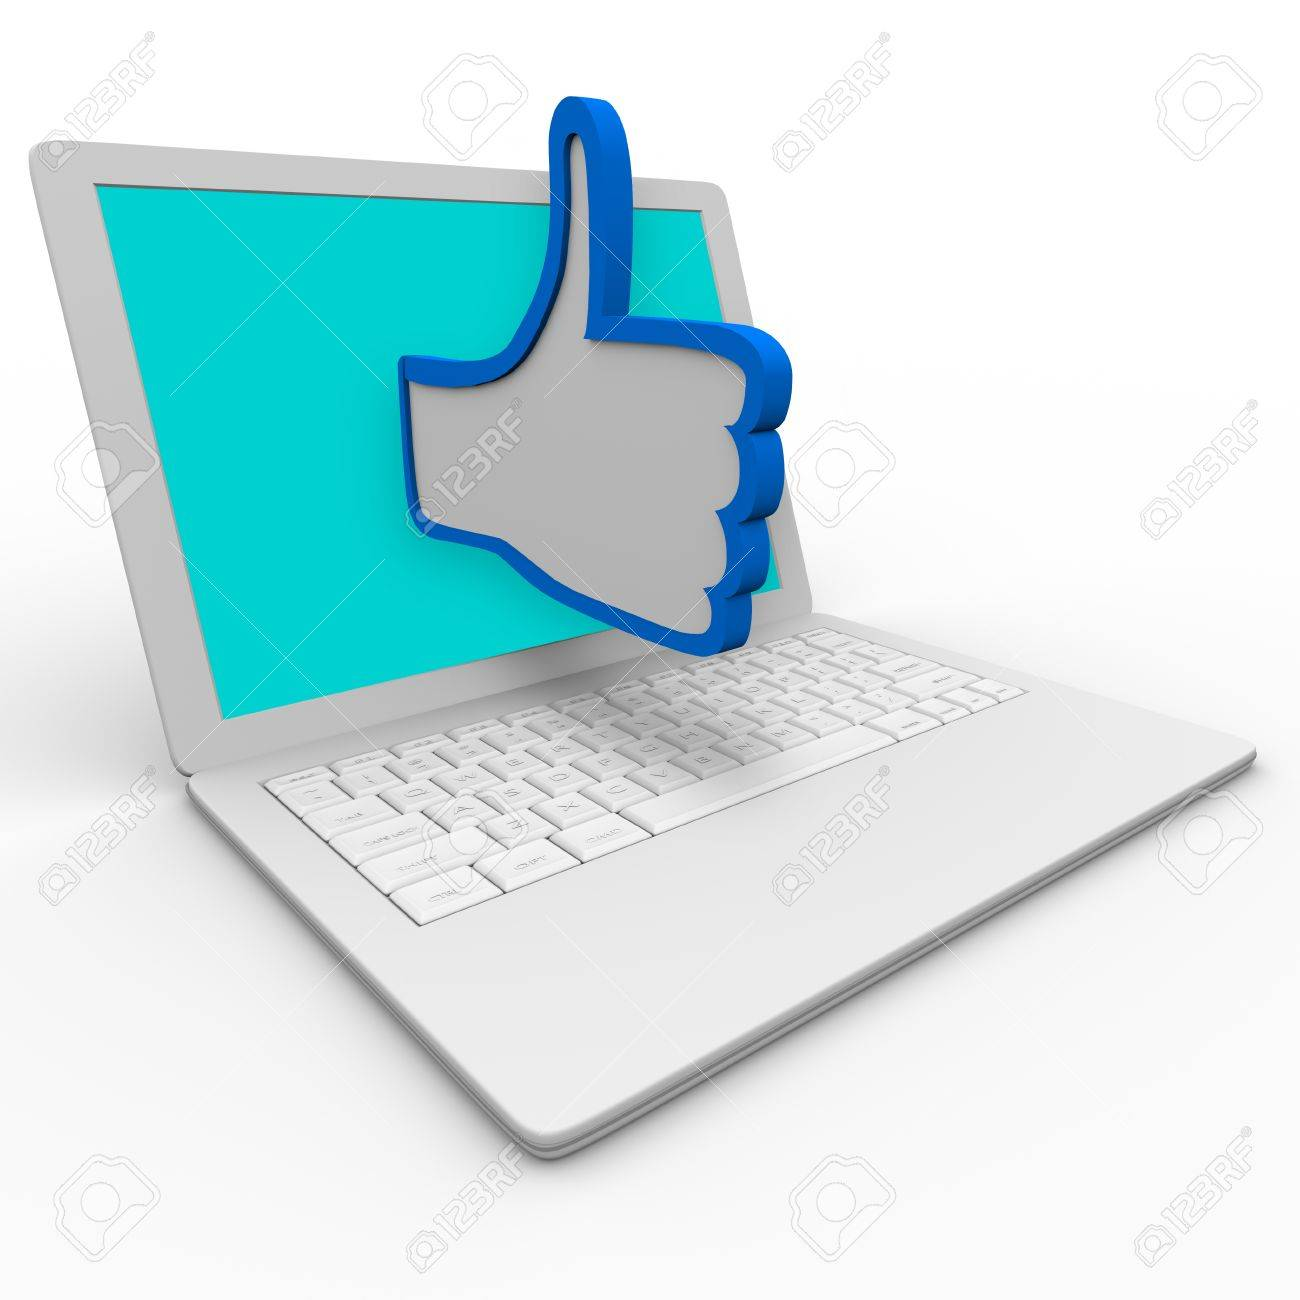 A Blue And White Thumbs Up Symbol Emerges From A Laptop Computer